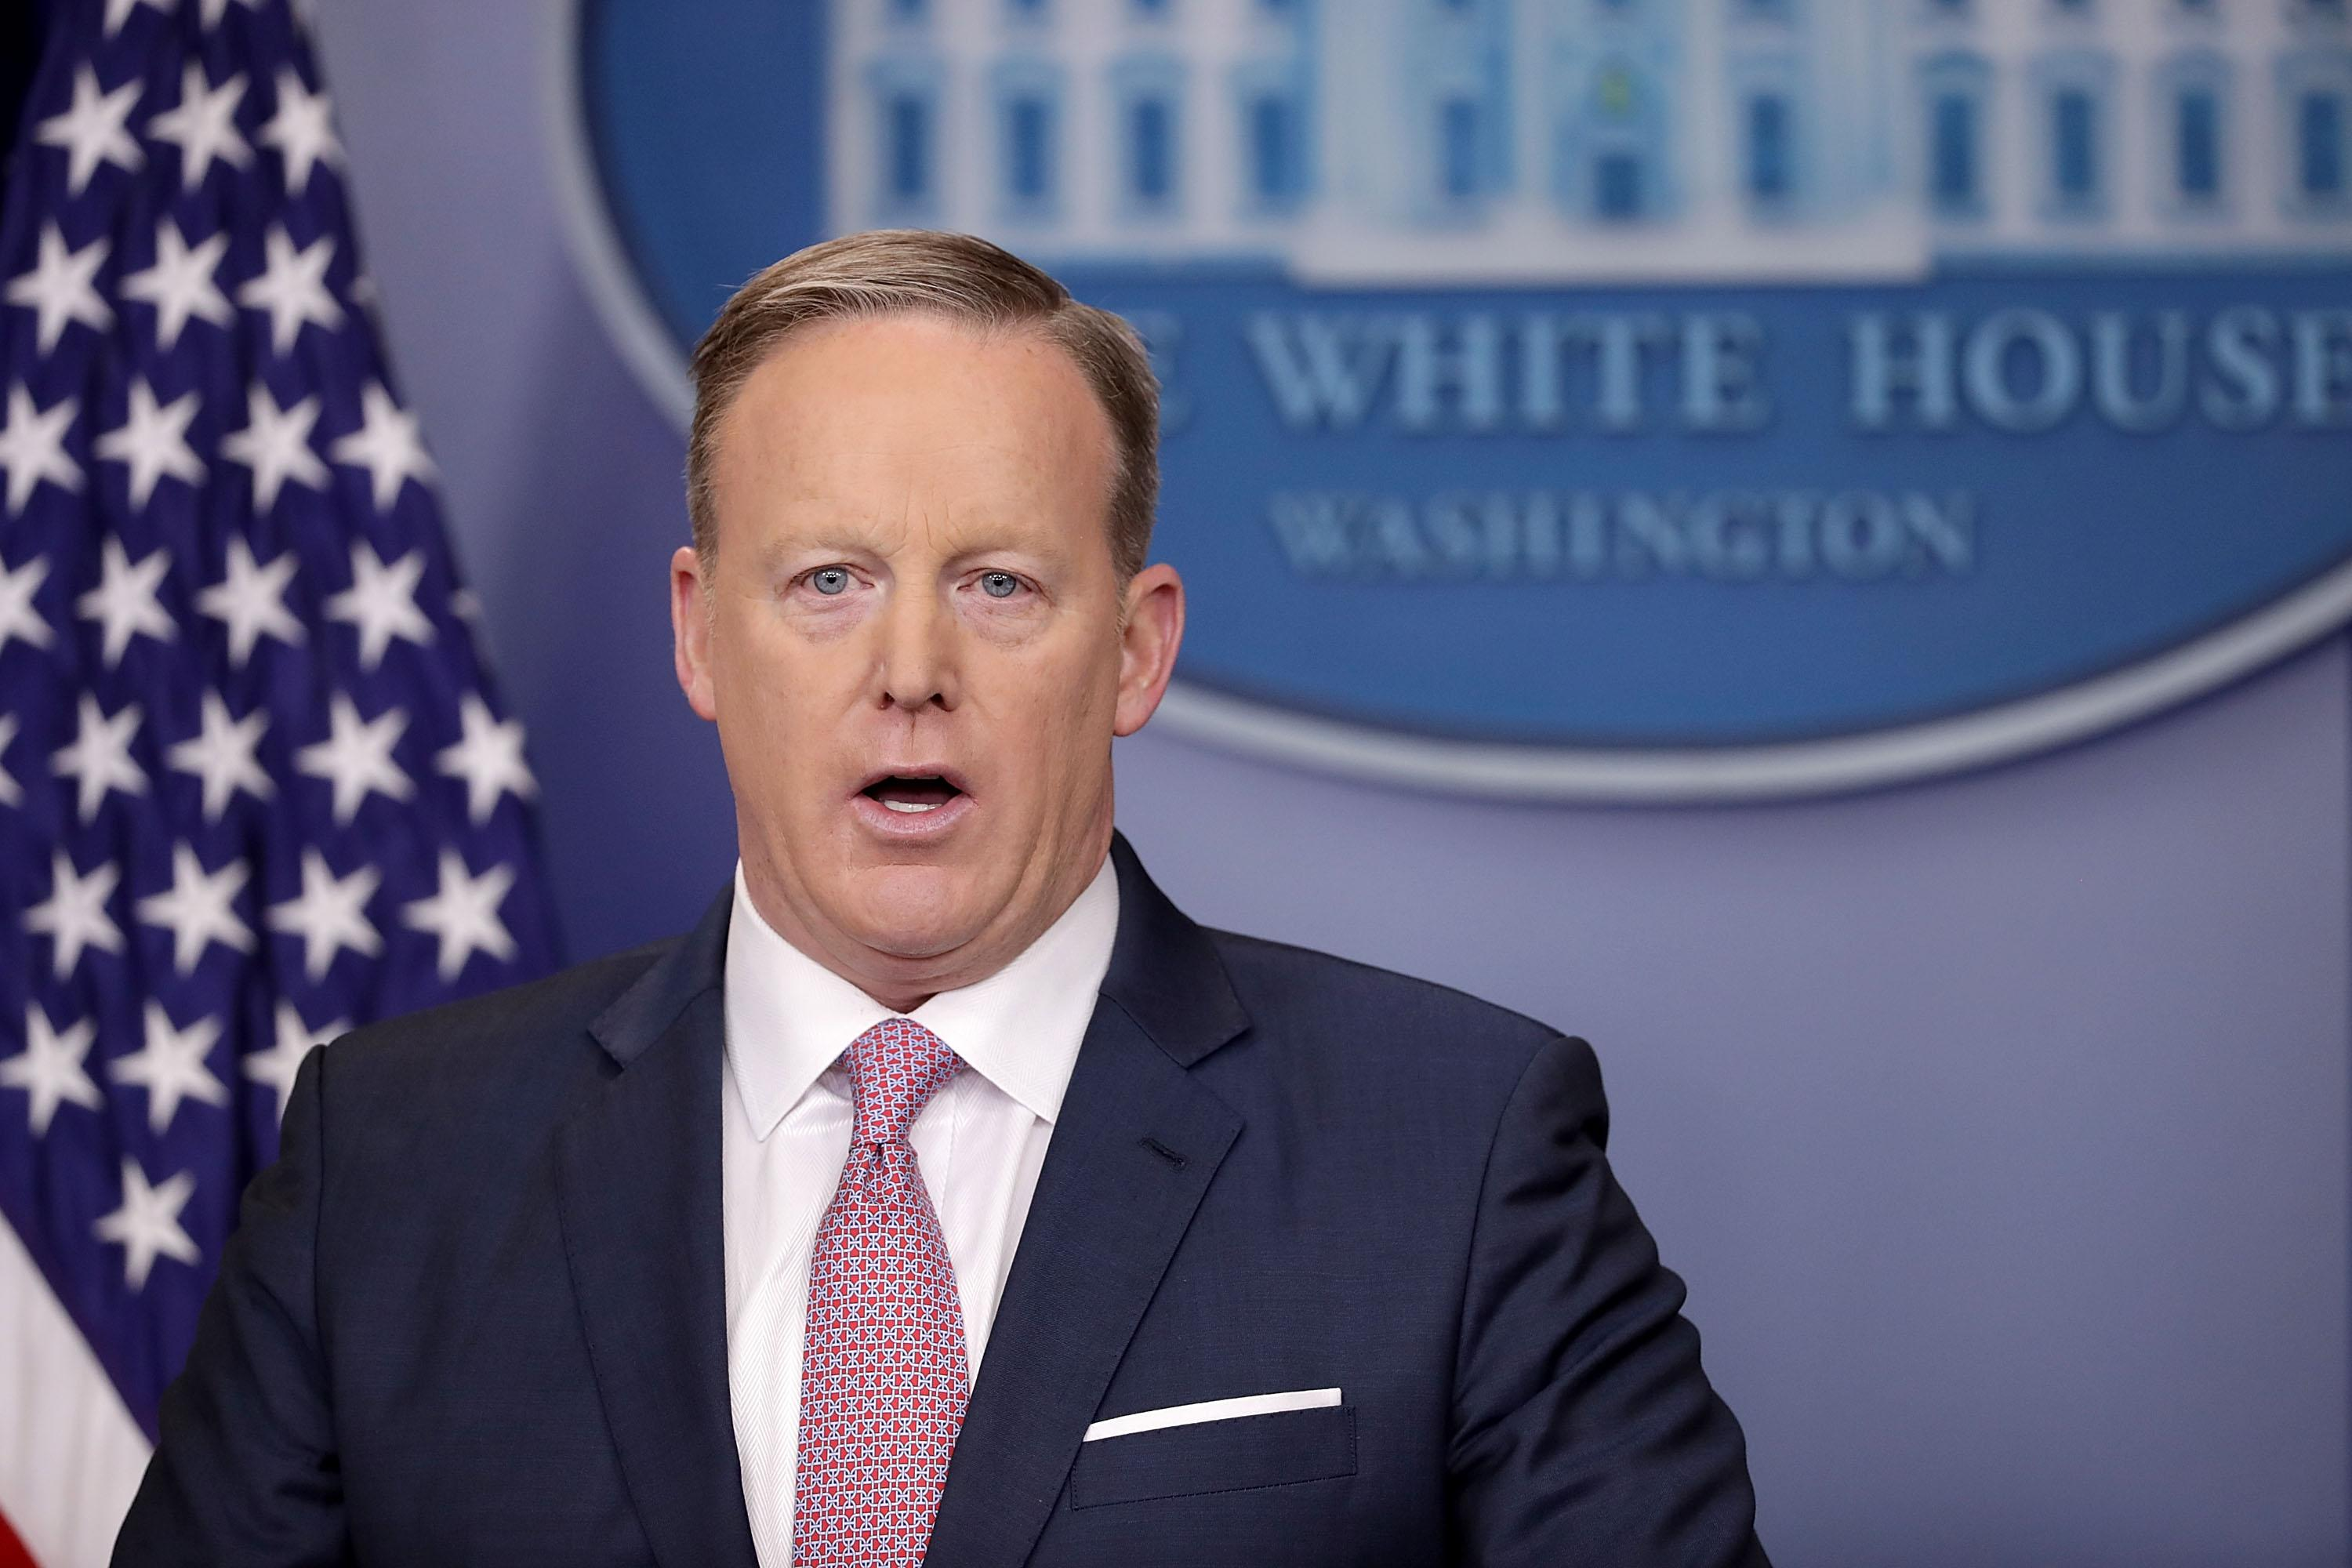 White House: The US will stop China from taking over territory in international waters